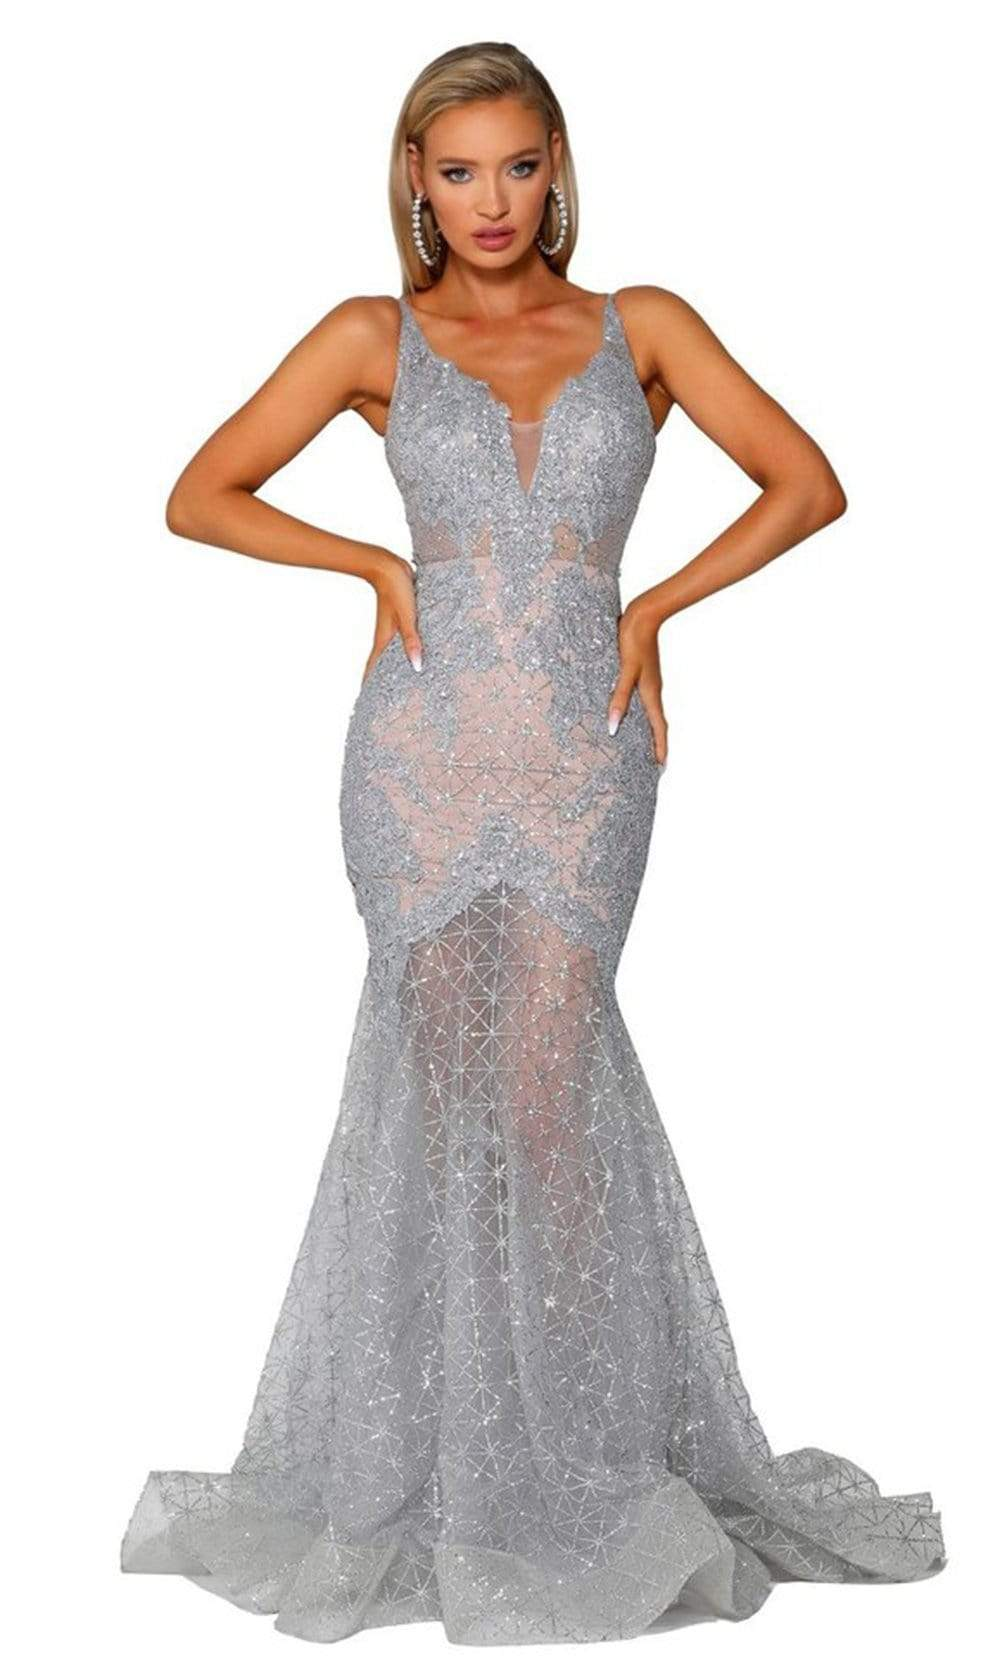 Portia and Scarlett - PS6023 Embellished Deep V-Neck Mermaid Dress from Portia and Scarlett